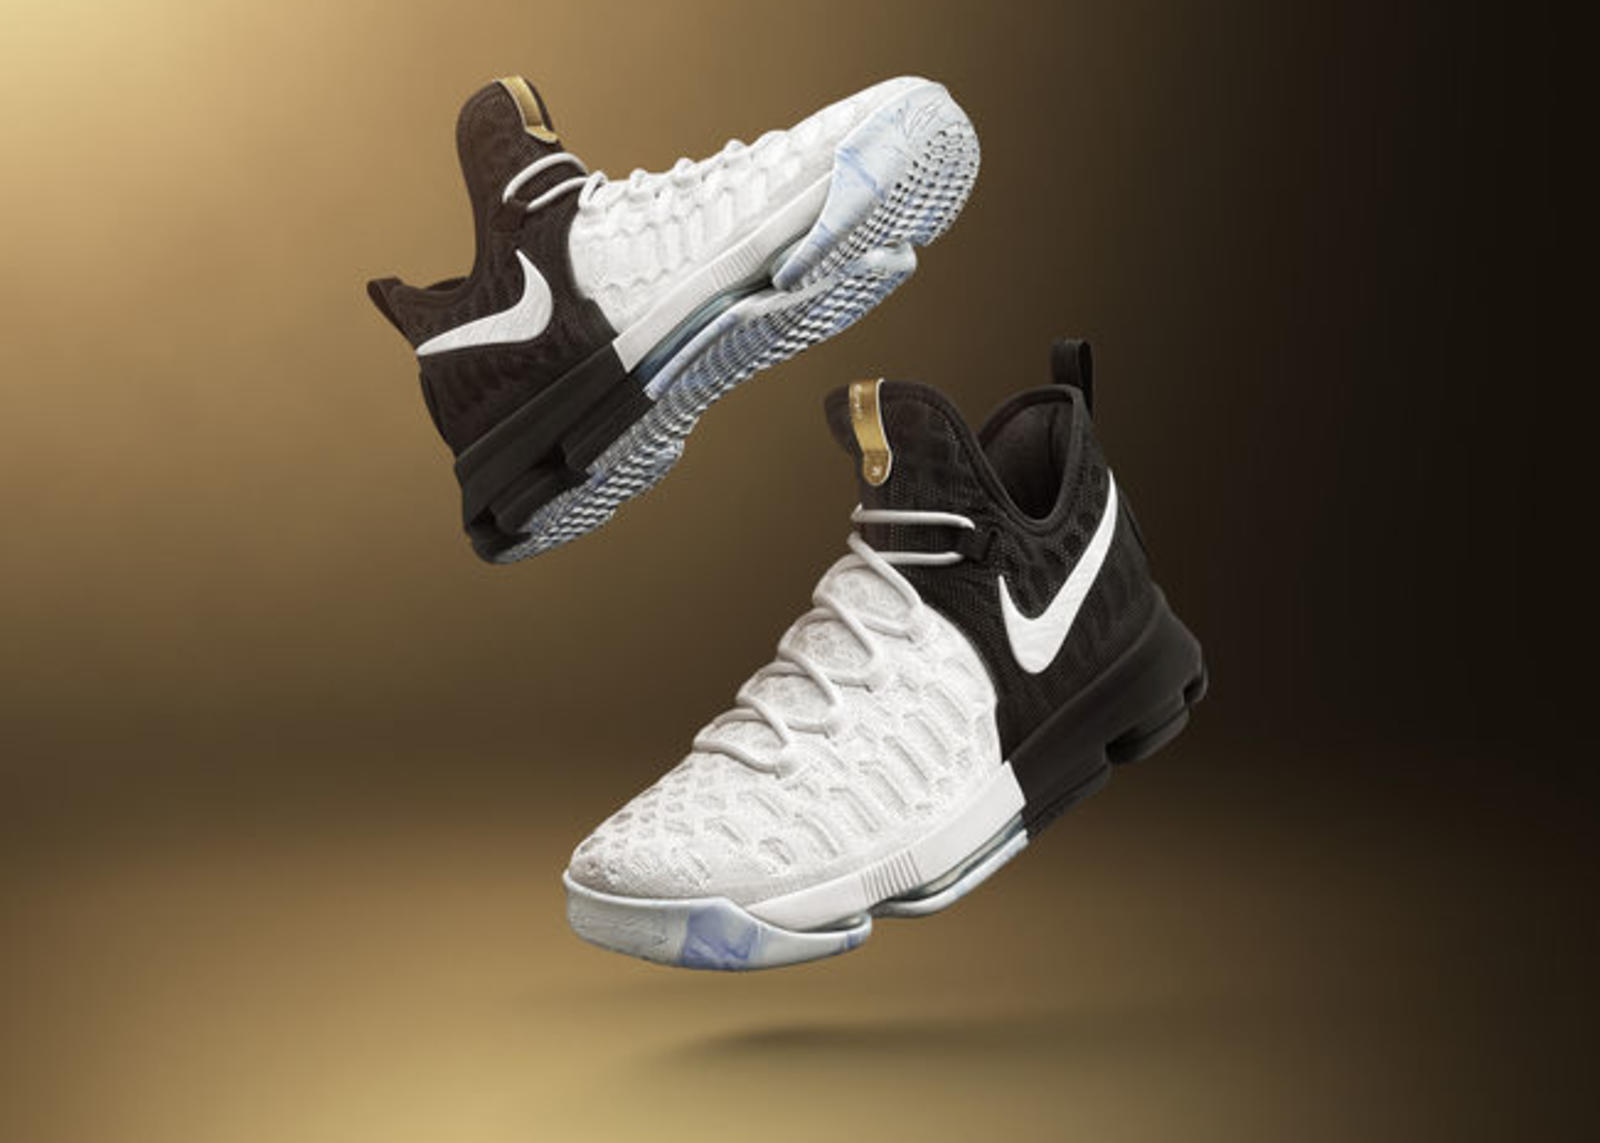 LeBron James, Kevin Durant, and Kyrie Irving will be rocking their  respective kicks from Nike's recently releases Black History Month  collection.